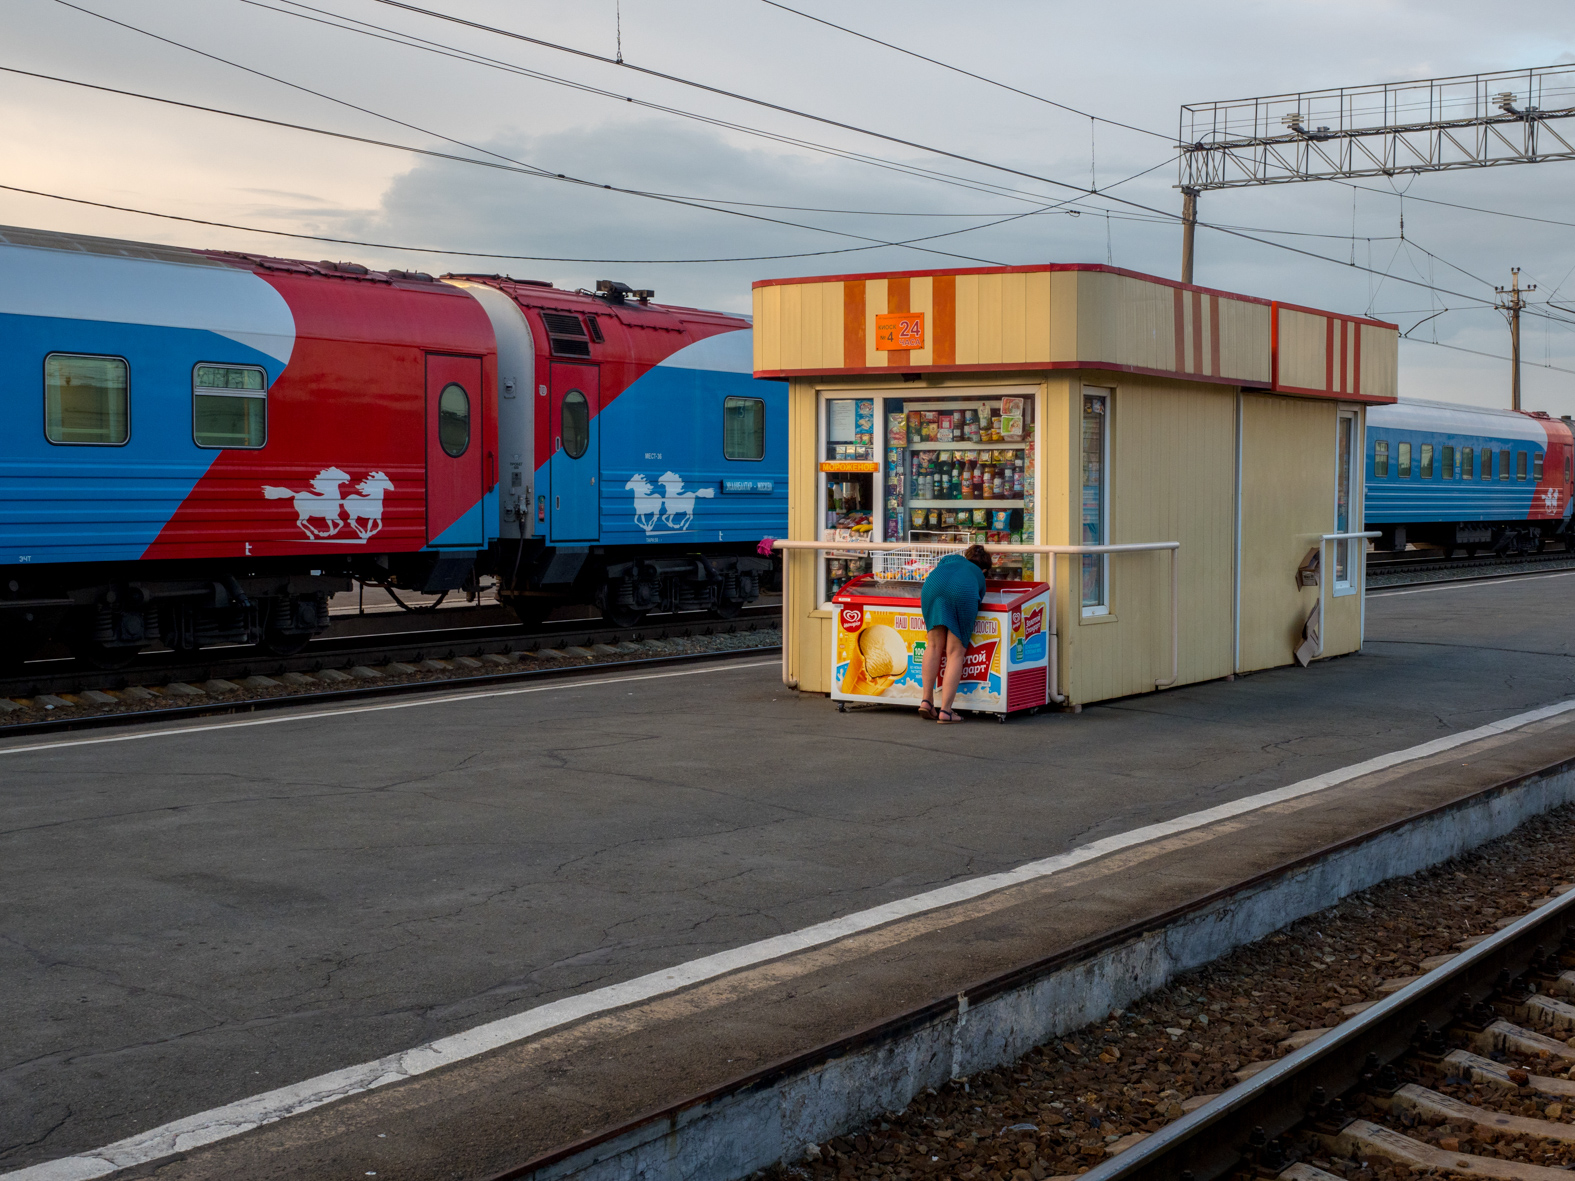 A platform shop providing supplies for passengers on the Trans-Siberian Railway from Moscow-Vladivostok,. Spanning a length of 9,289km, it's the longest uninterrupted single country train journey in the world. It has connected Moscow with Vladivostok since 1916, and is still being expanded. It was built between 1891 and 1916 under the supervision of Russian government ministers personally appointed by Tsar Alexander III and his son, the Tsarevich Nicholas (later Tsar Nicholas II).